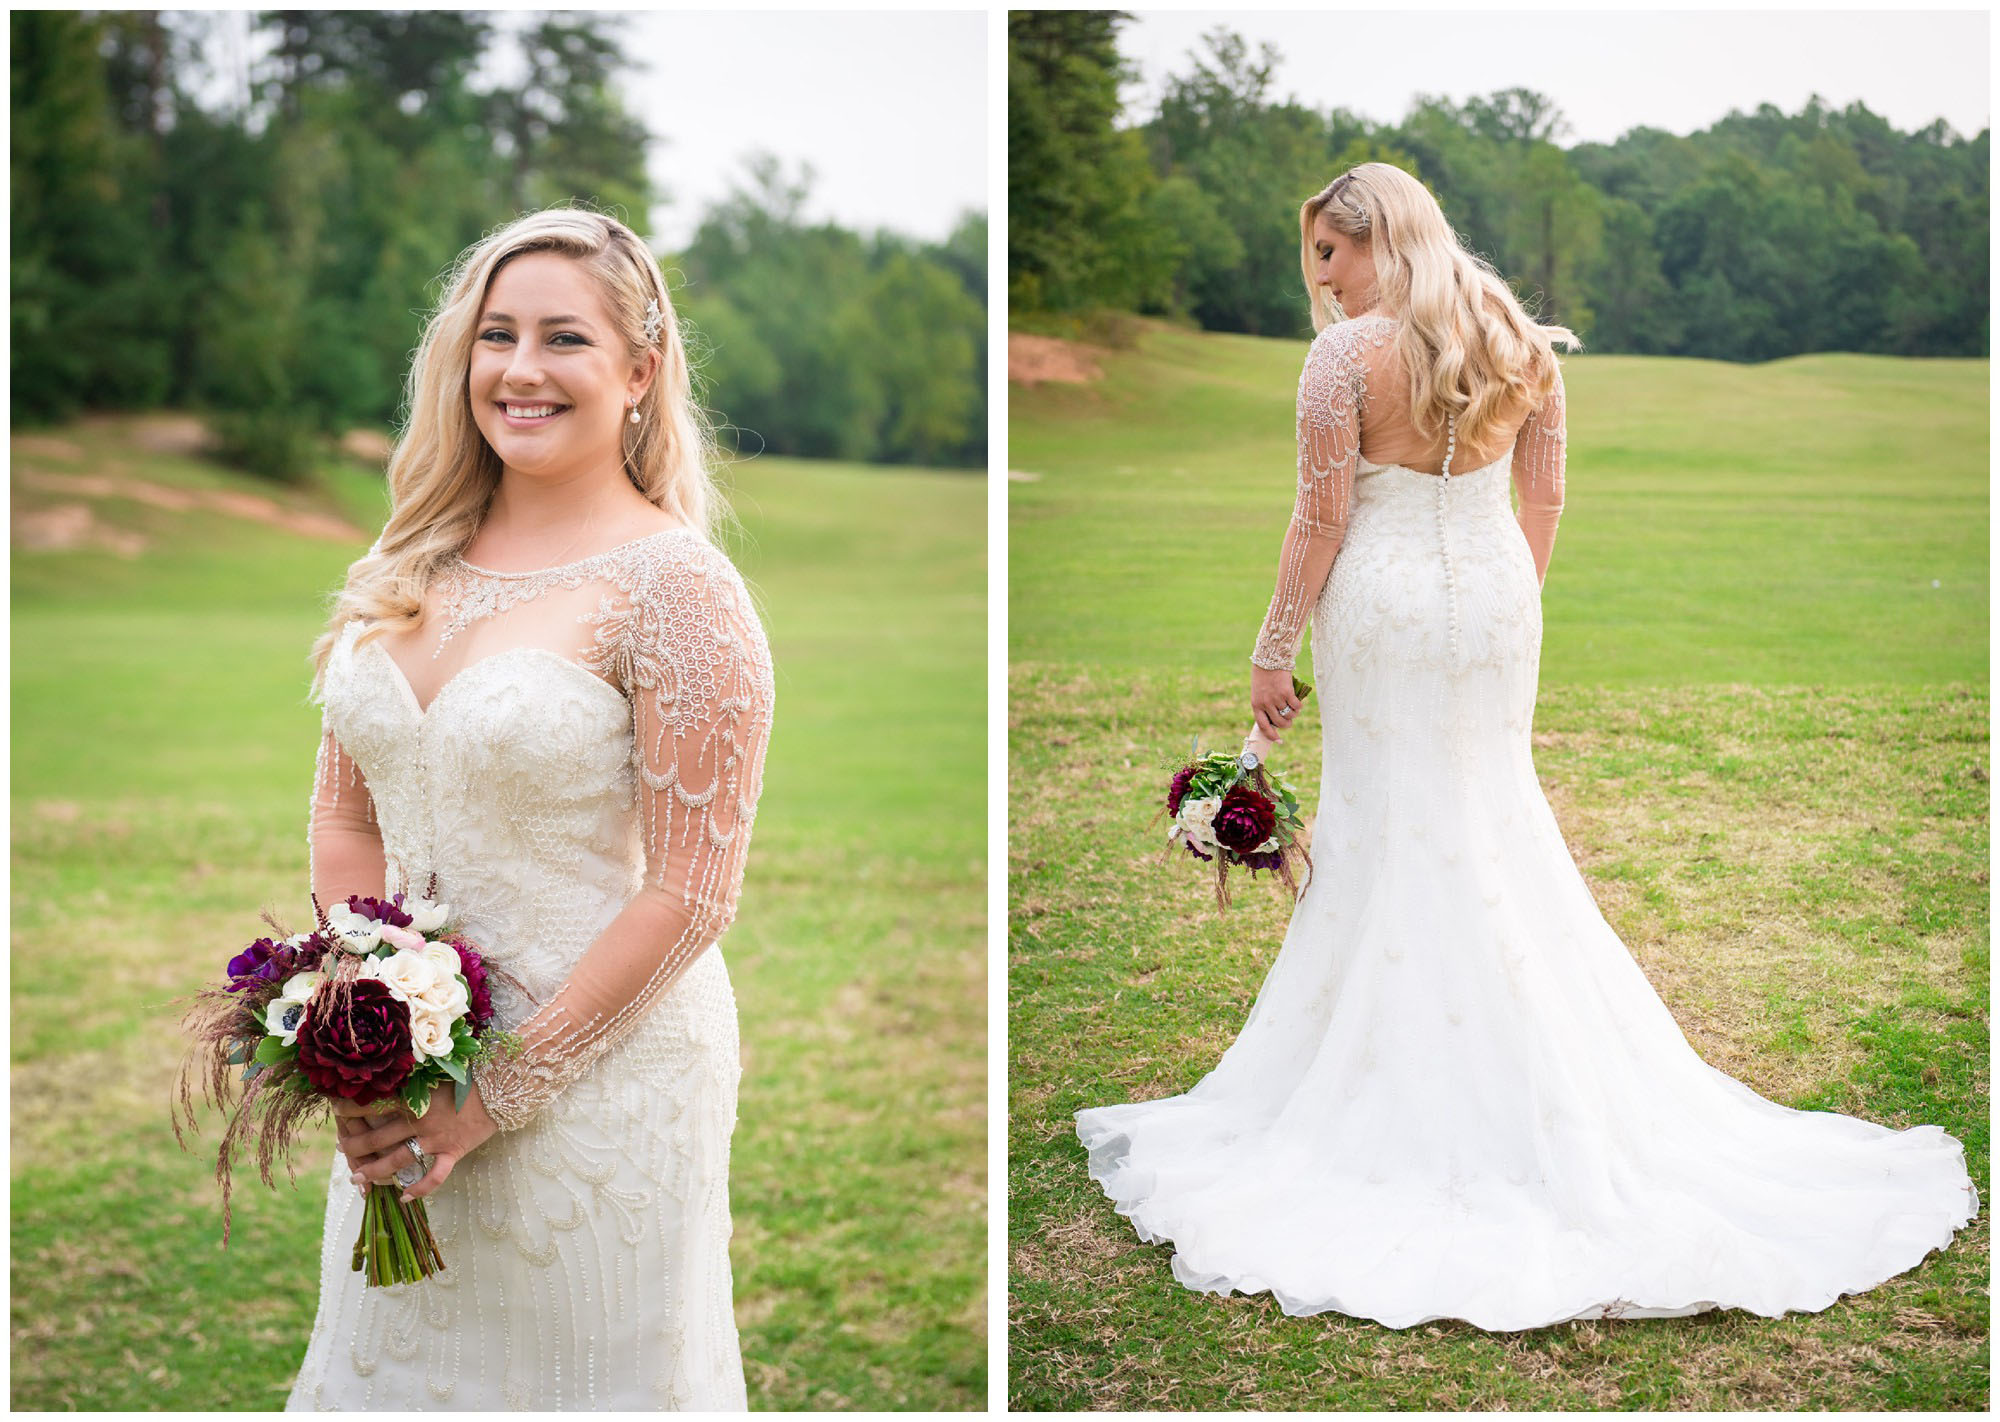 portraits of bride wearing beaded dress with sheer sleeves